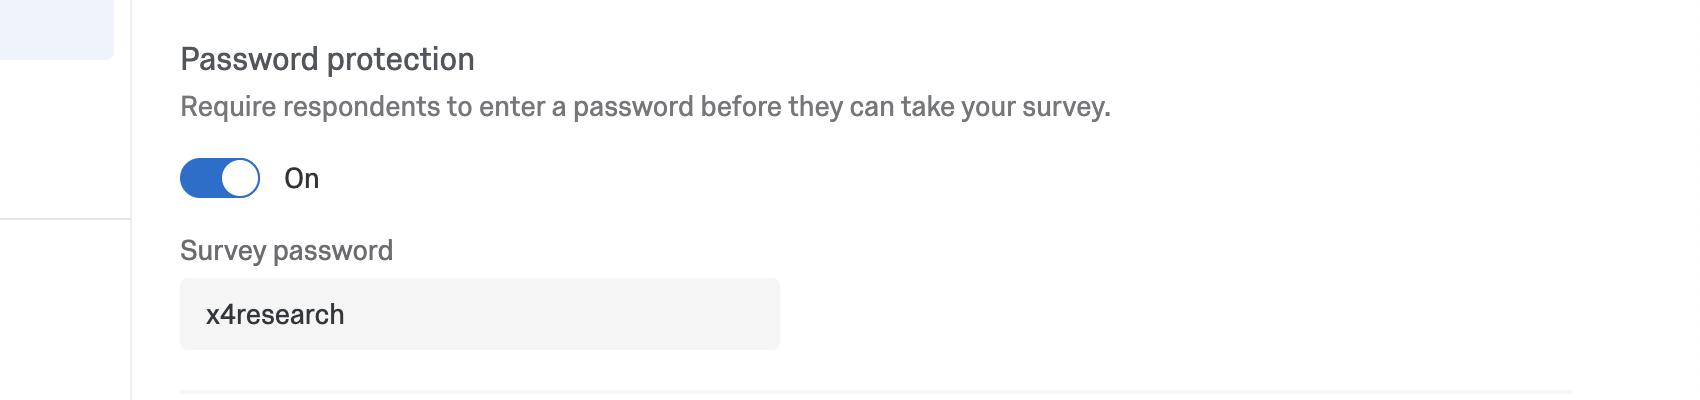 Enable password protection, makes a field appear where you can type a password. The password does not get hidden by asterisks